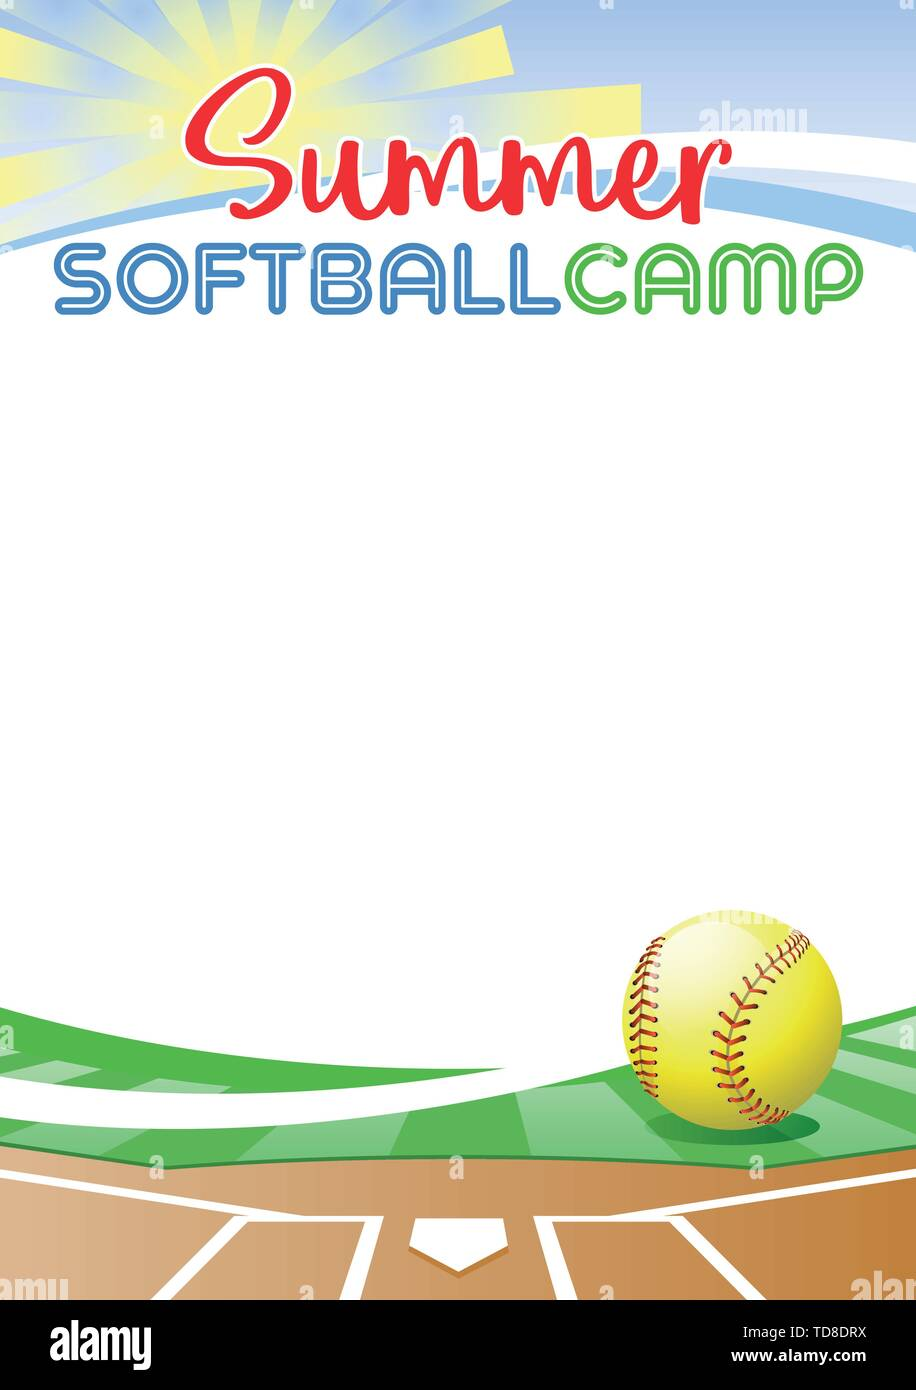 Summer Softball Camp. Template poster with realistic softball ball. Place for your text message. Vector illustration. Stock Vector